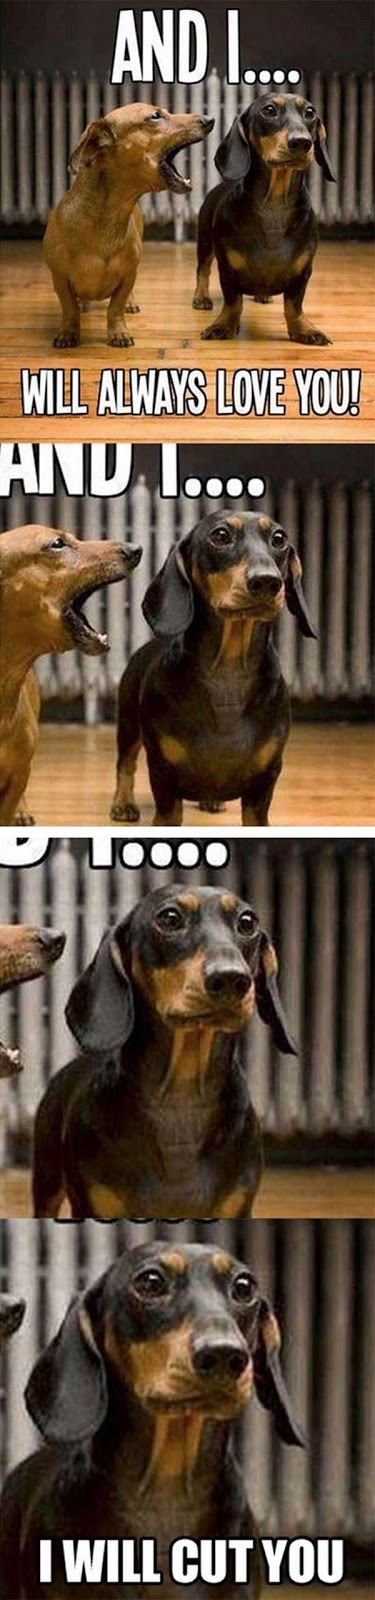 Funny Pictures Of Animals | Fun Claw: Funny Pictures Of Dogs - 20 Pics: Dogs, Stuff, Dachshund, Doxie, Funnies, Funny Animal, So Funny